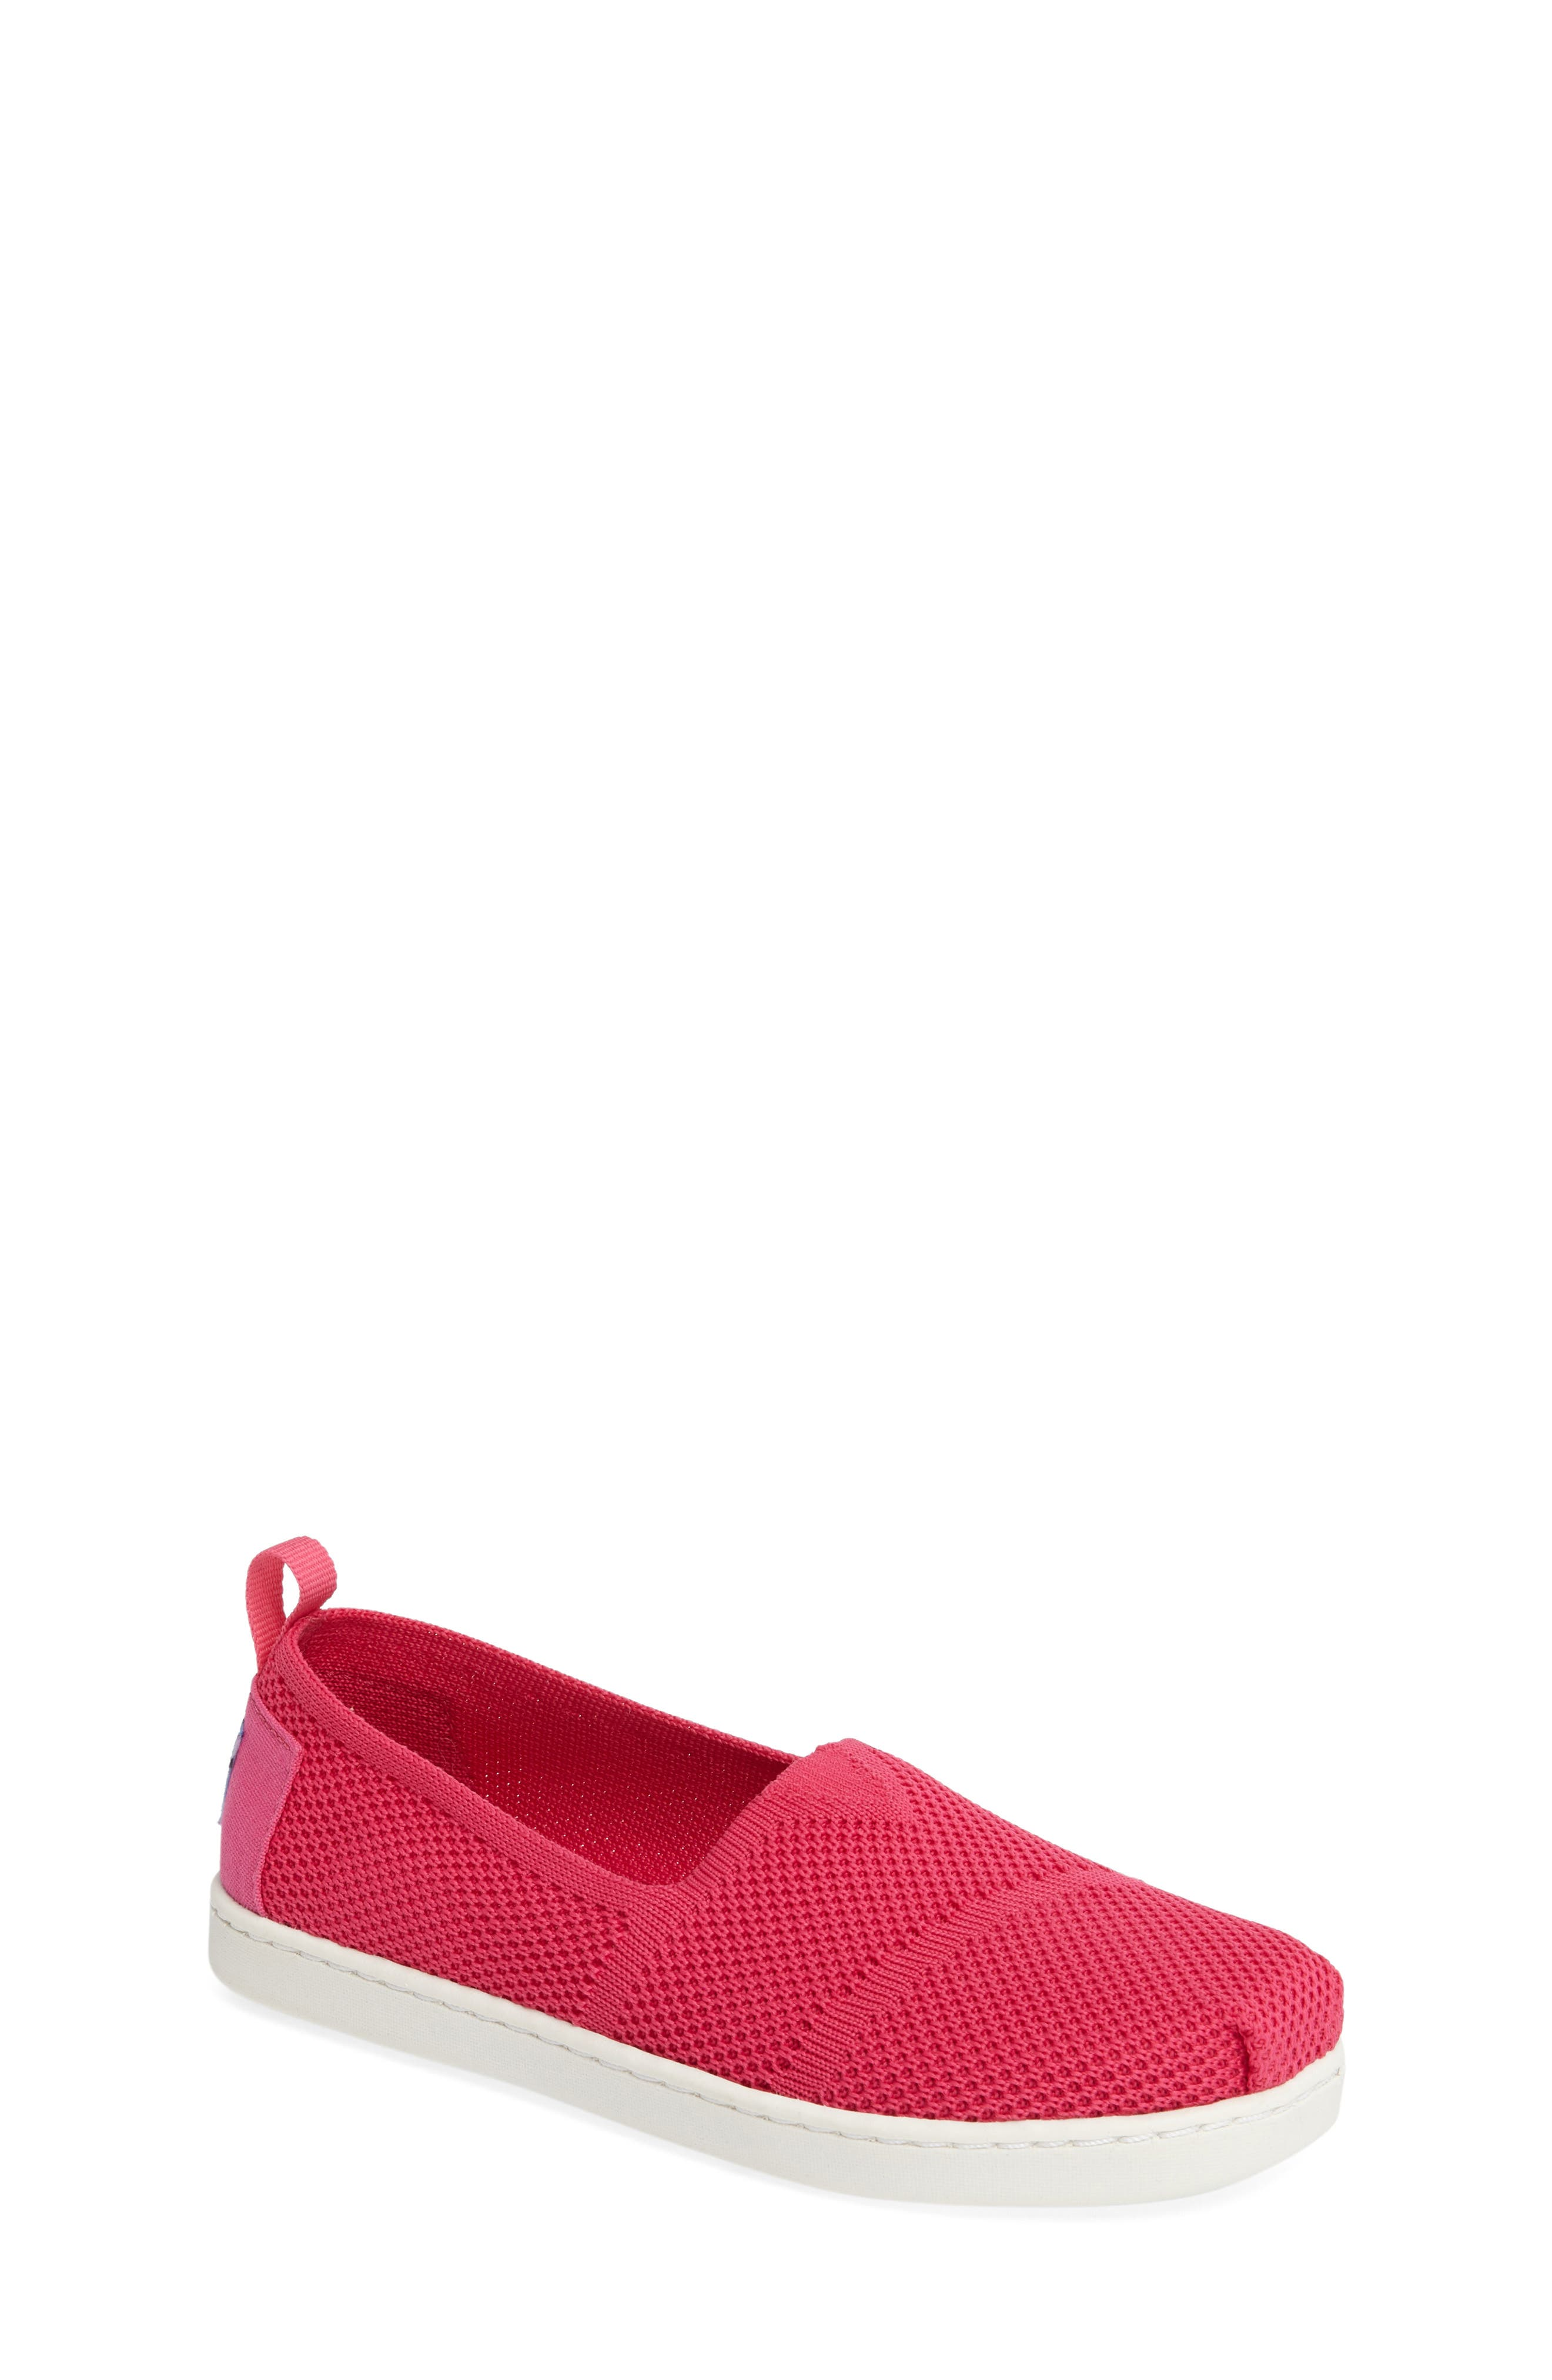 TOMS Knit Slip-On (Baby, Walker, Toddler, Little Kid & Big Kid)